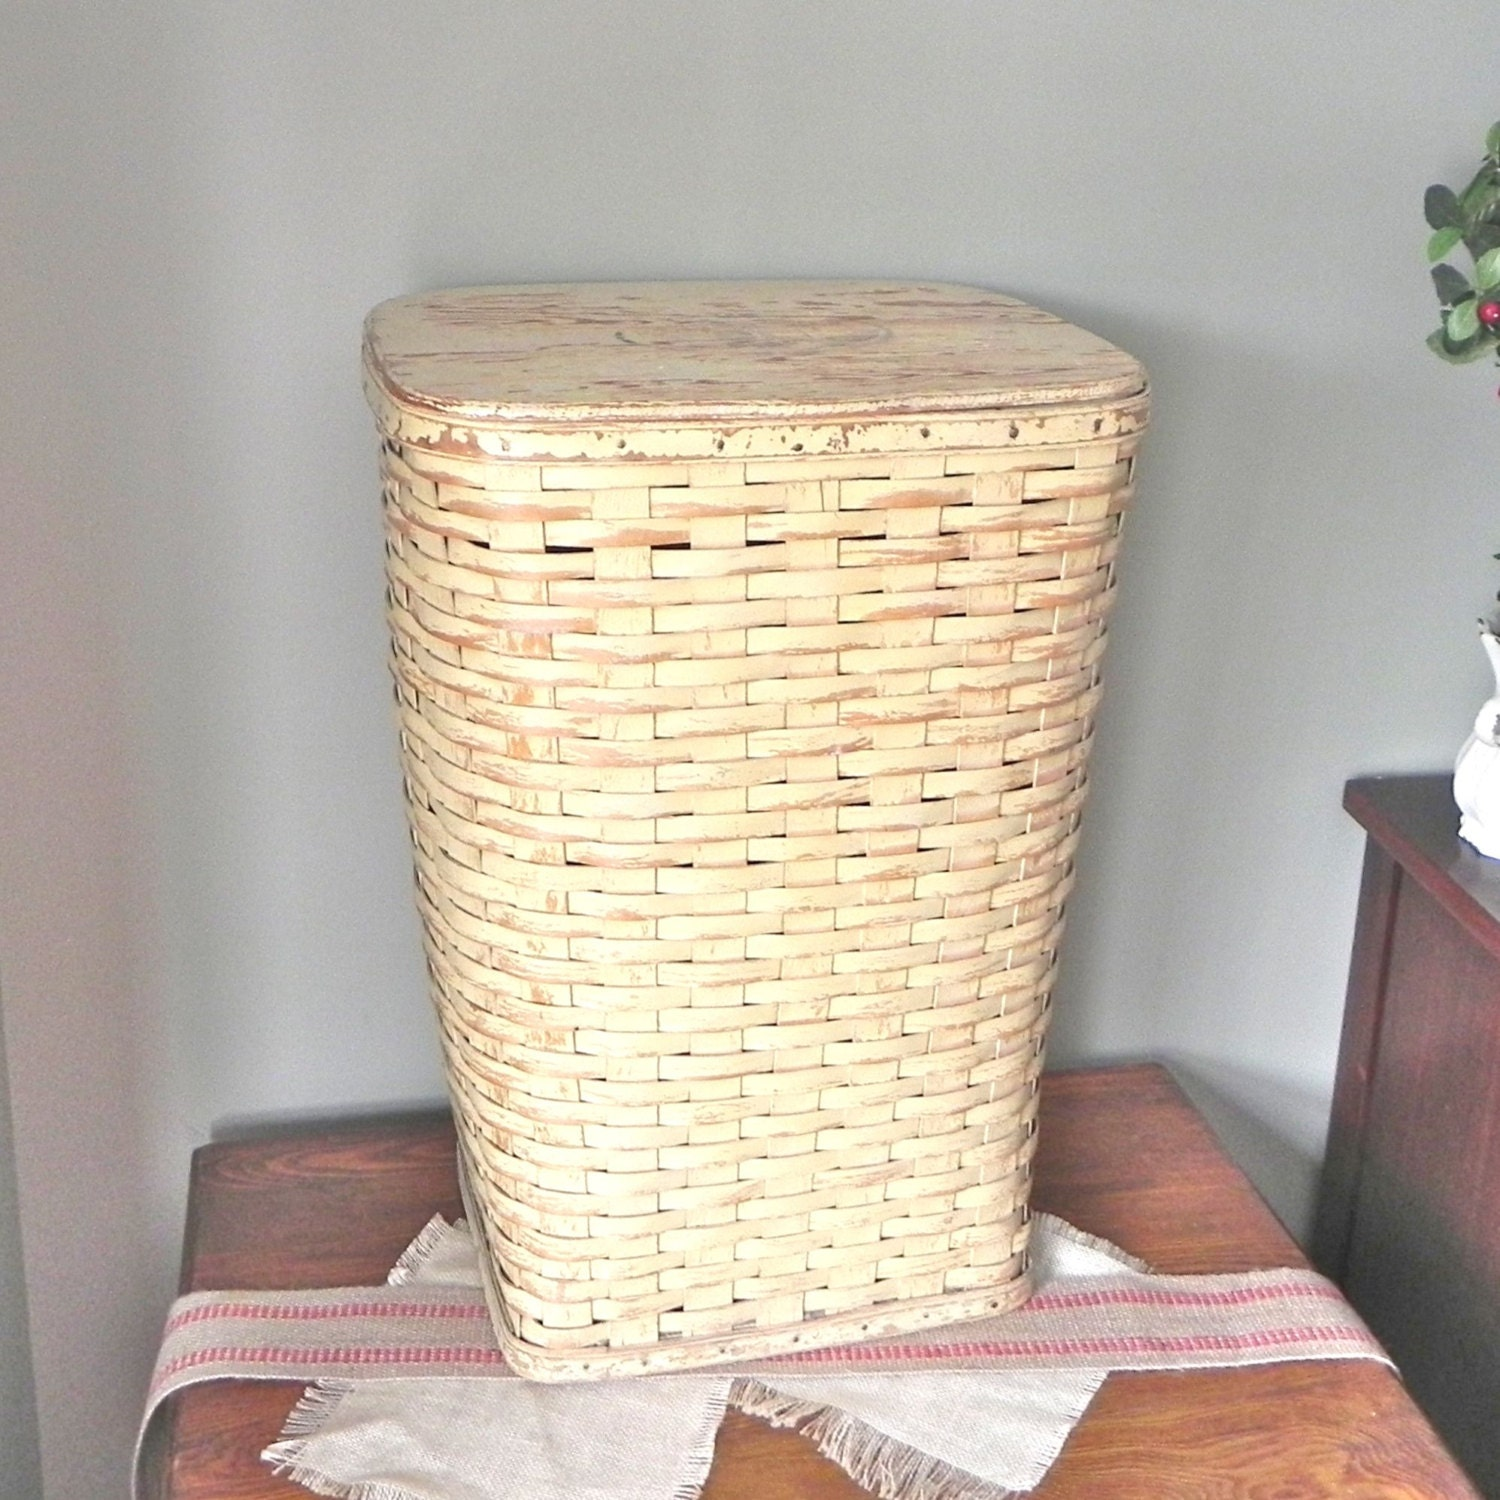 Vintage wicker hamper basket for clothes with by jollytimeone - Wicker clothes hamper ...